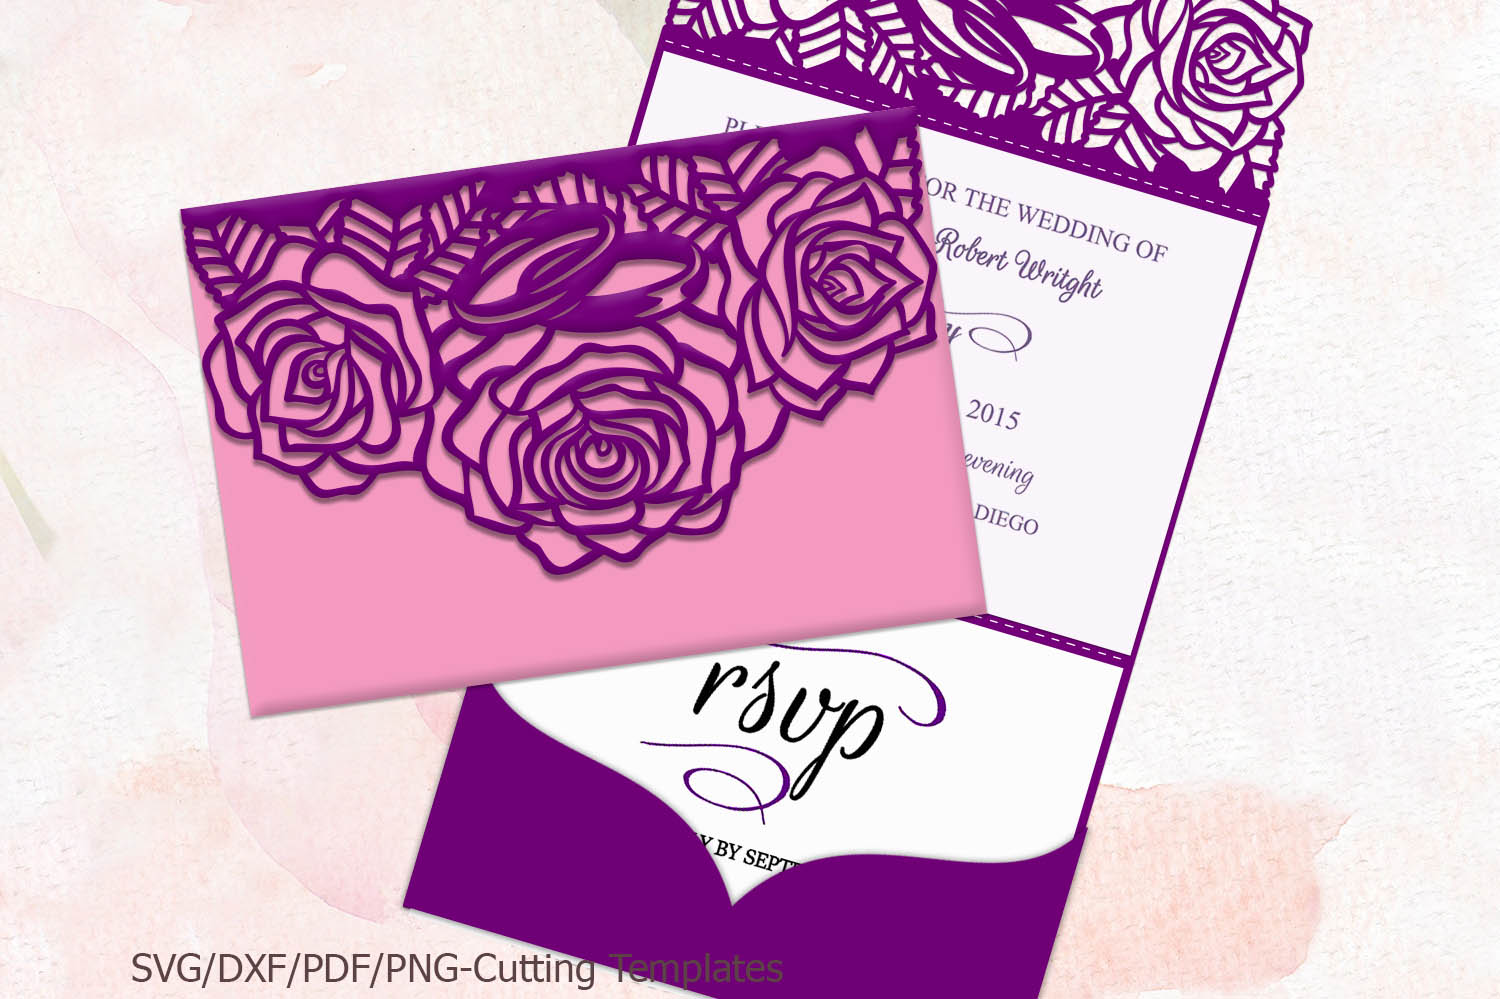 Download Free Trifold Wedding Invitation Graphic By Cornelia Creative Fabrica for Cricut Explore, Silhouette and other cutting machines.